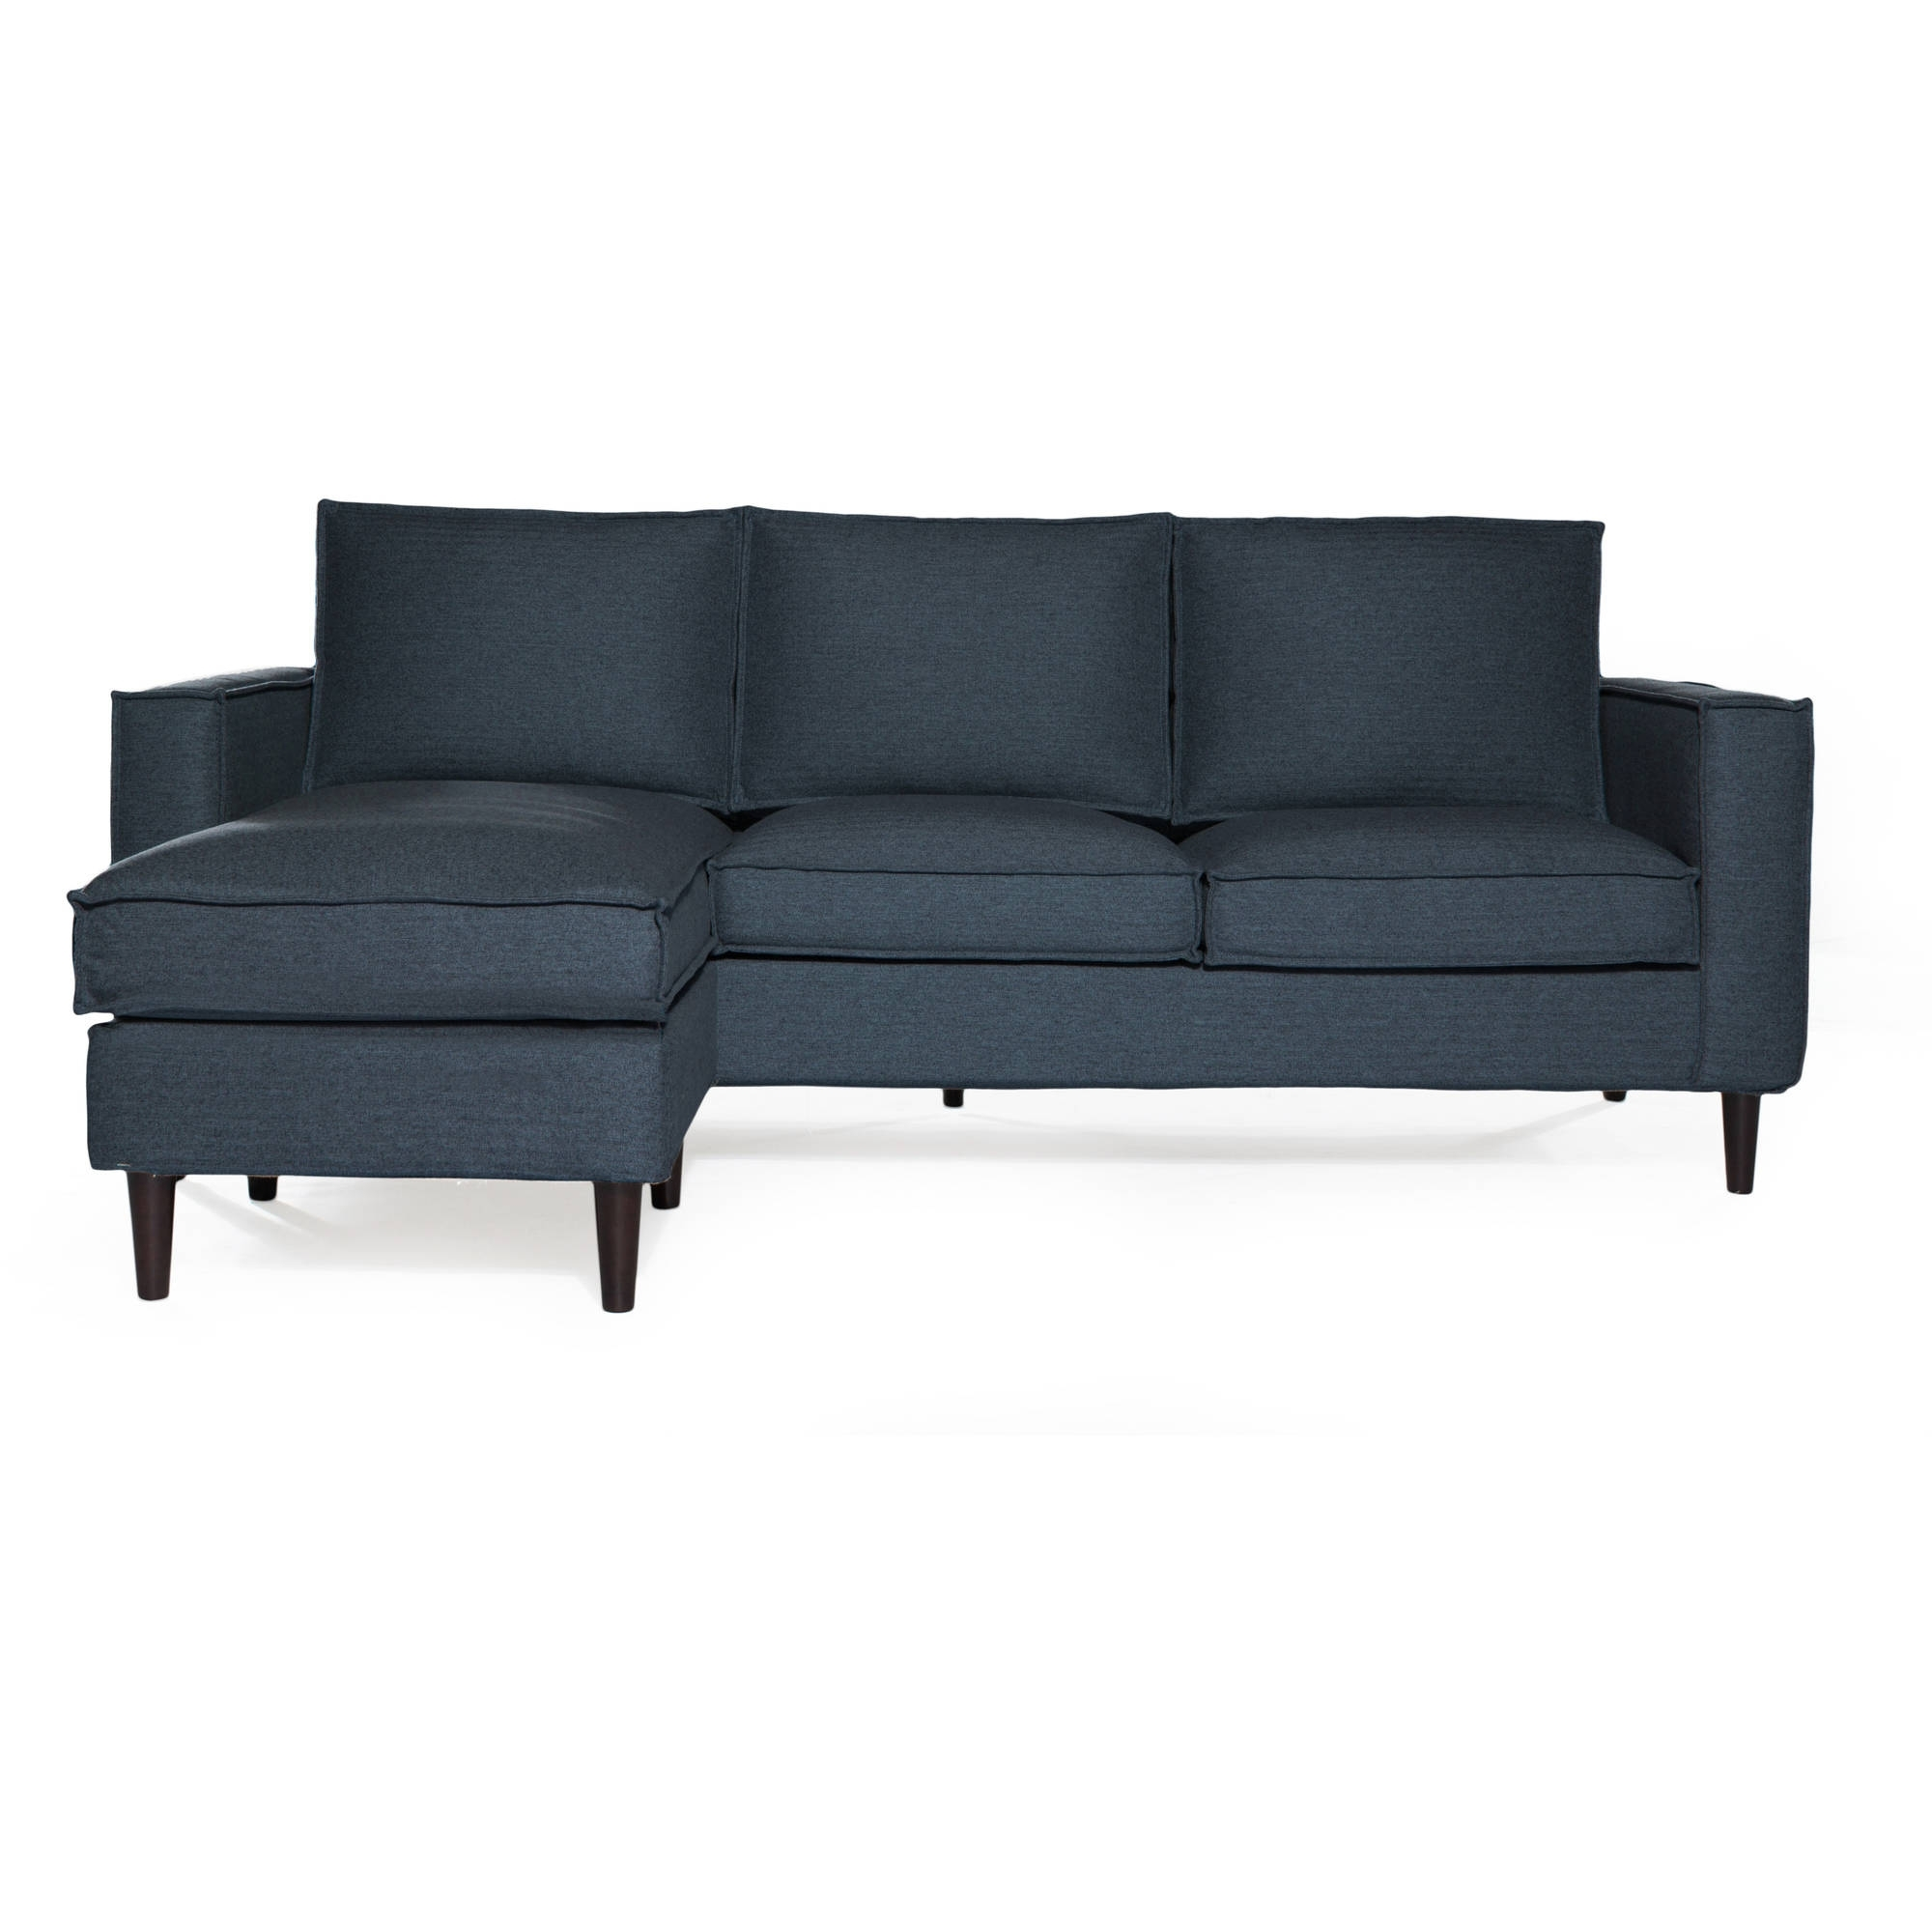 Wayfair Sectional Sofas In Recent Sofas & Couches – Walmart (View 14 of 20)